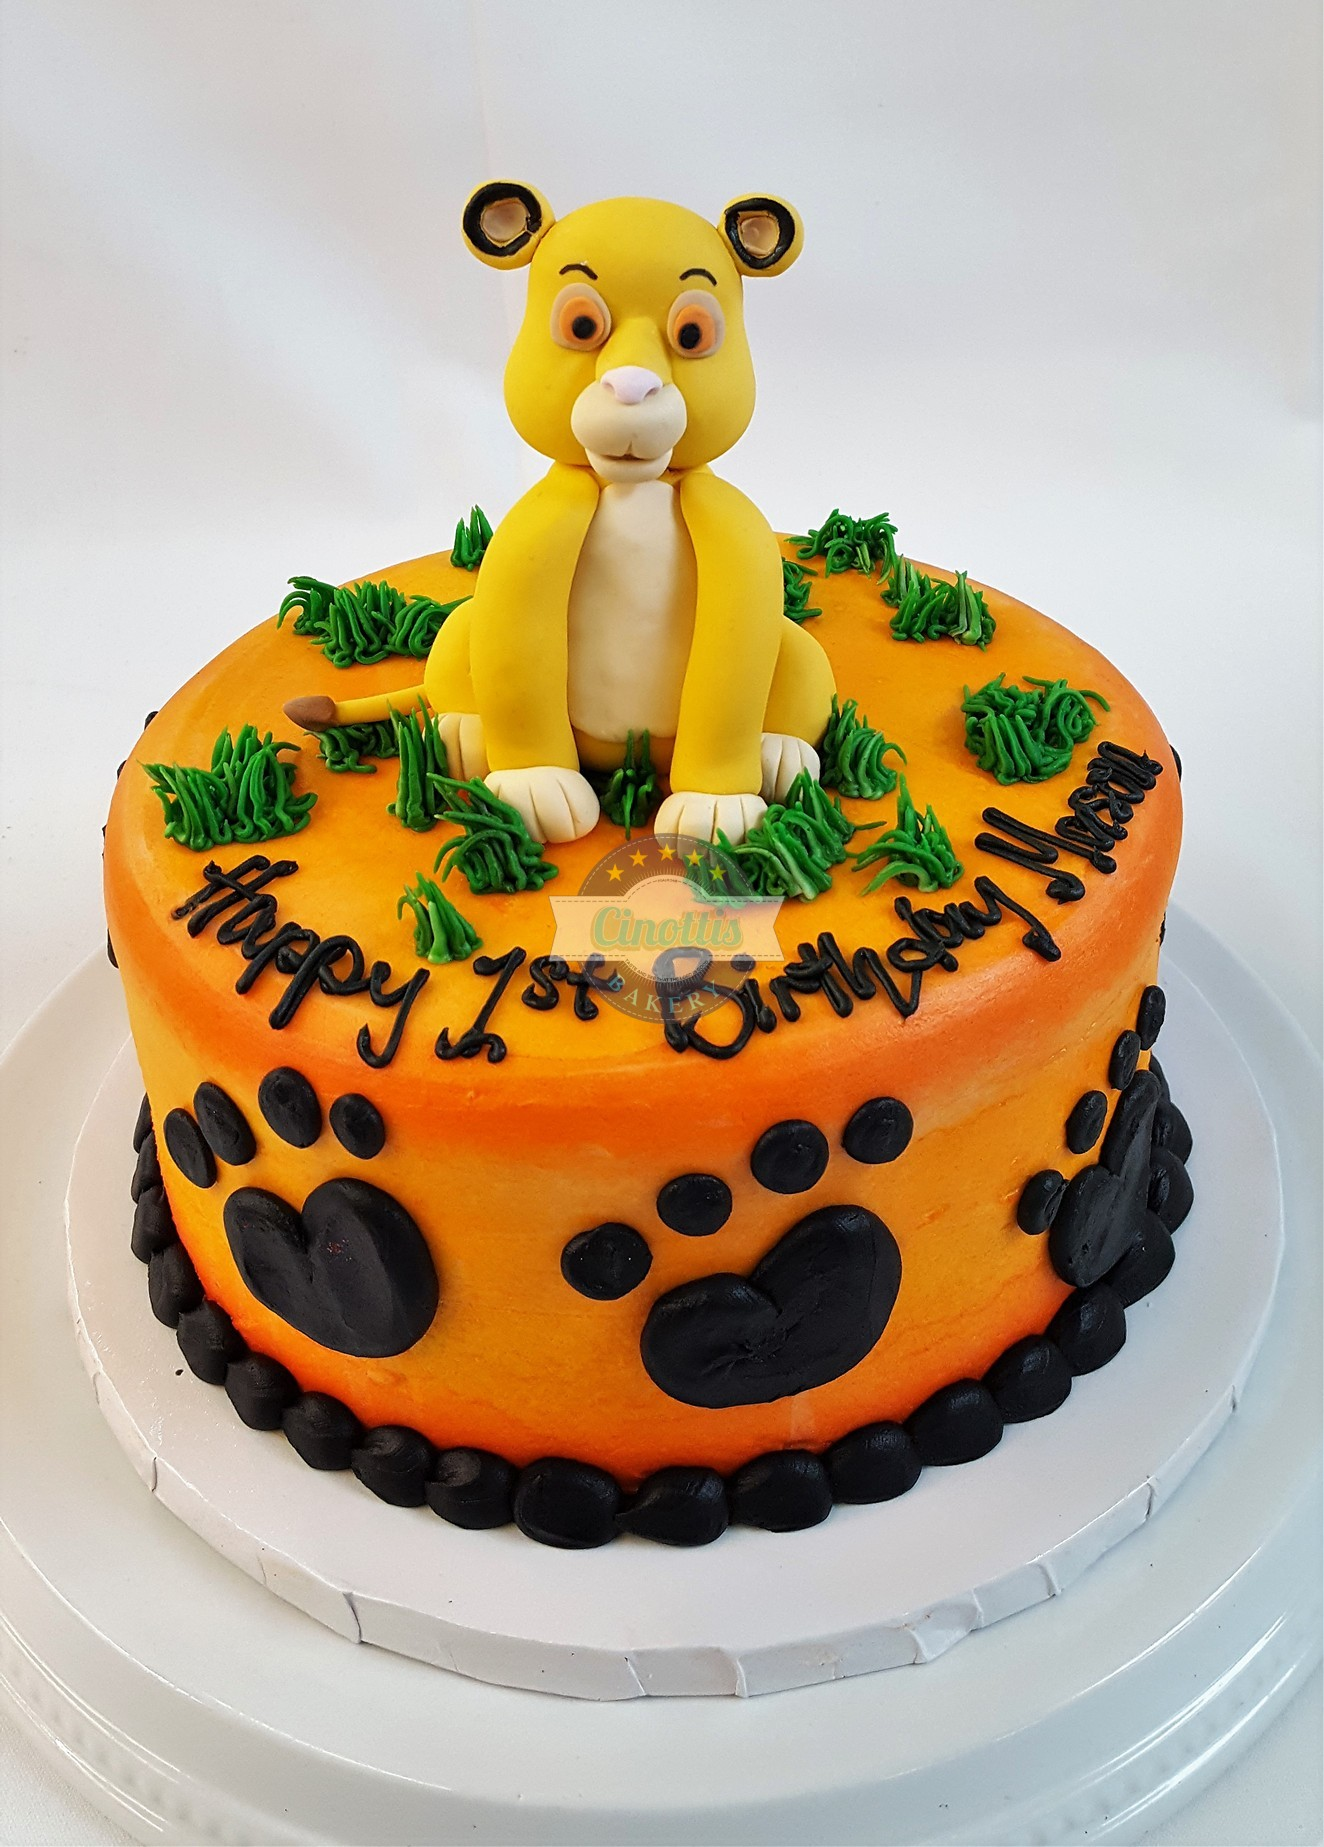 Incredible Cakes And Cupcakes Cinottis Bakery Funny Birthday Cards Online Kookostrdamsfinfo